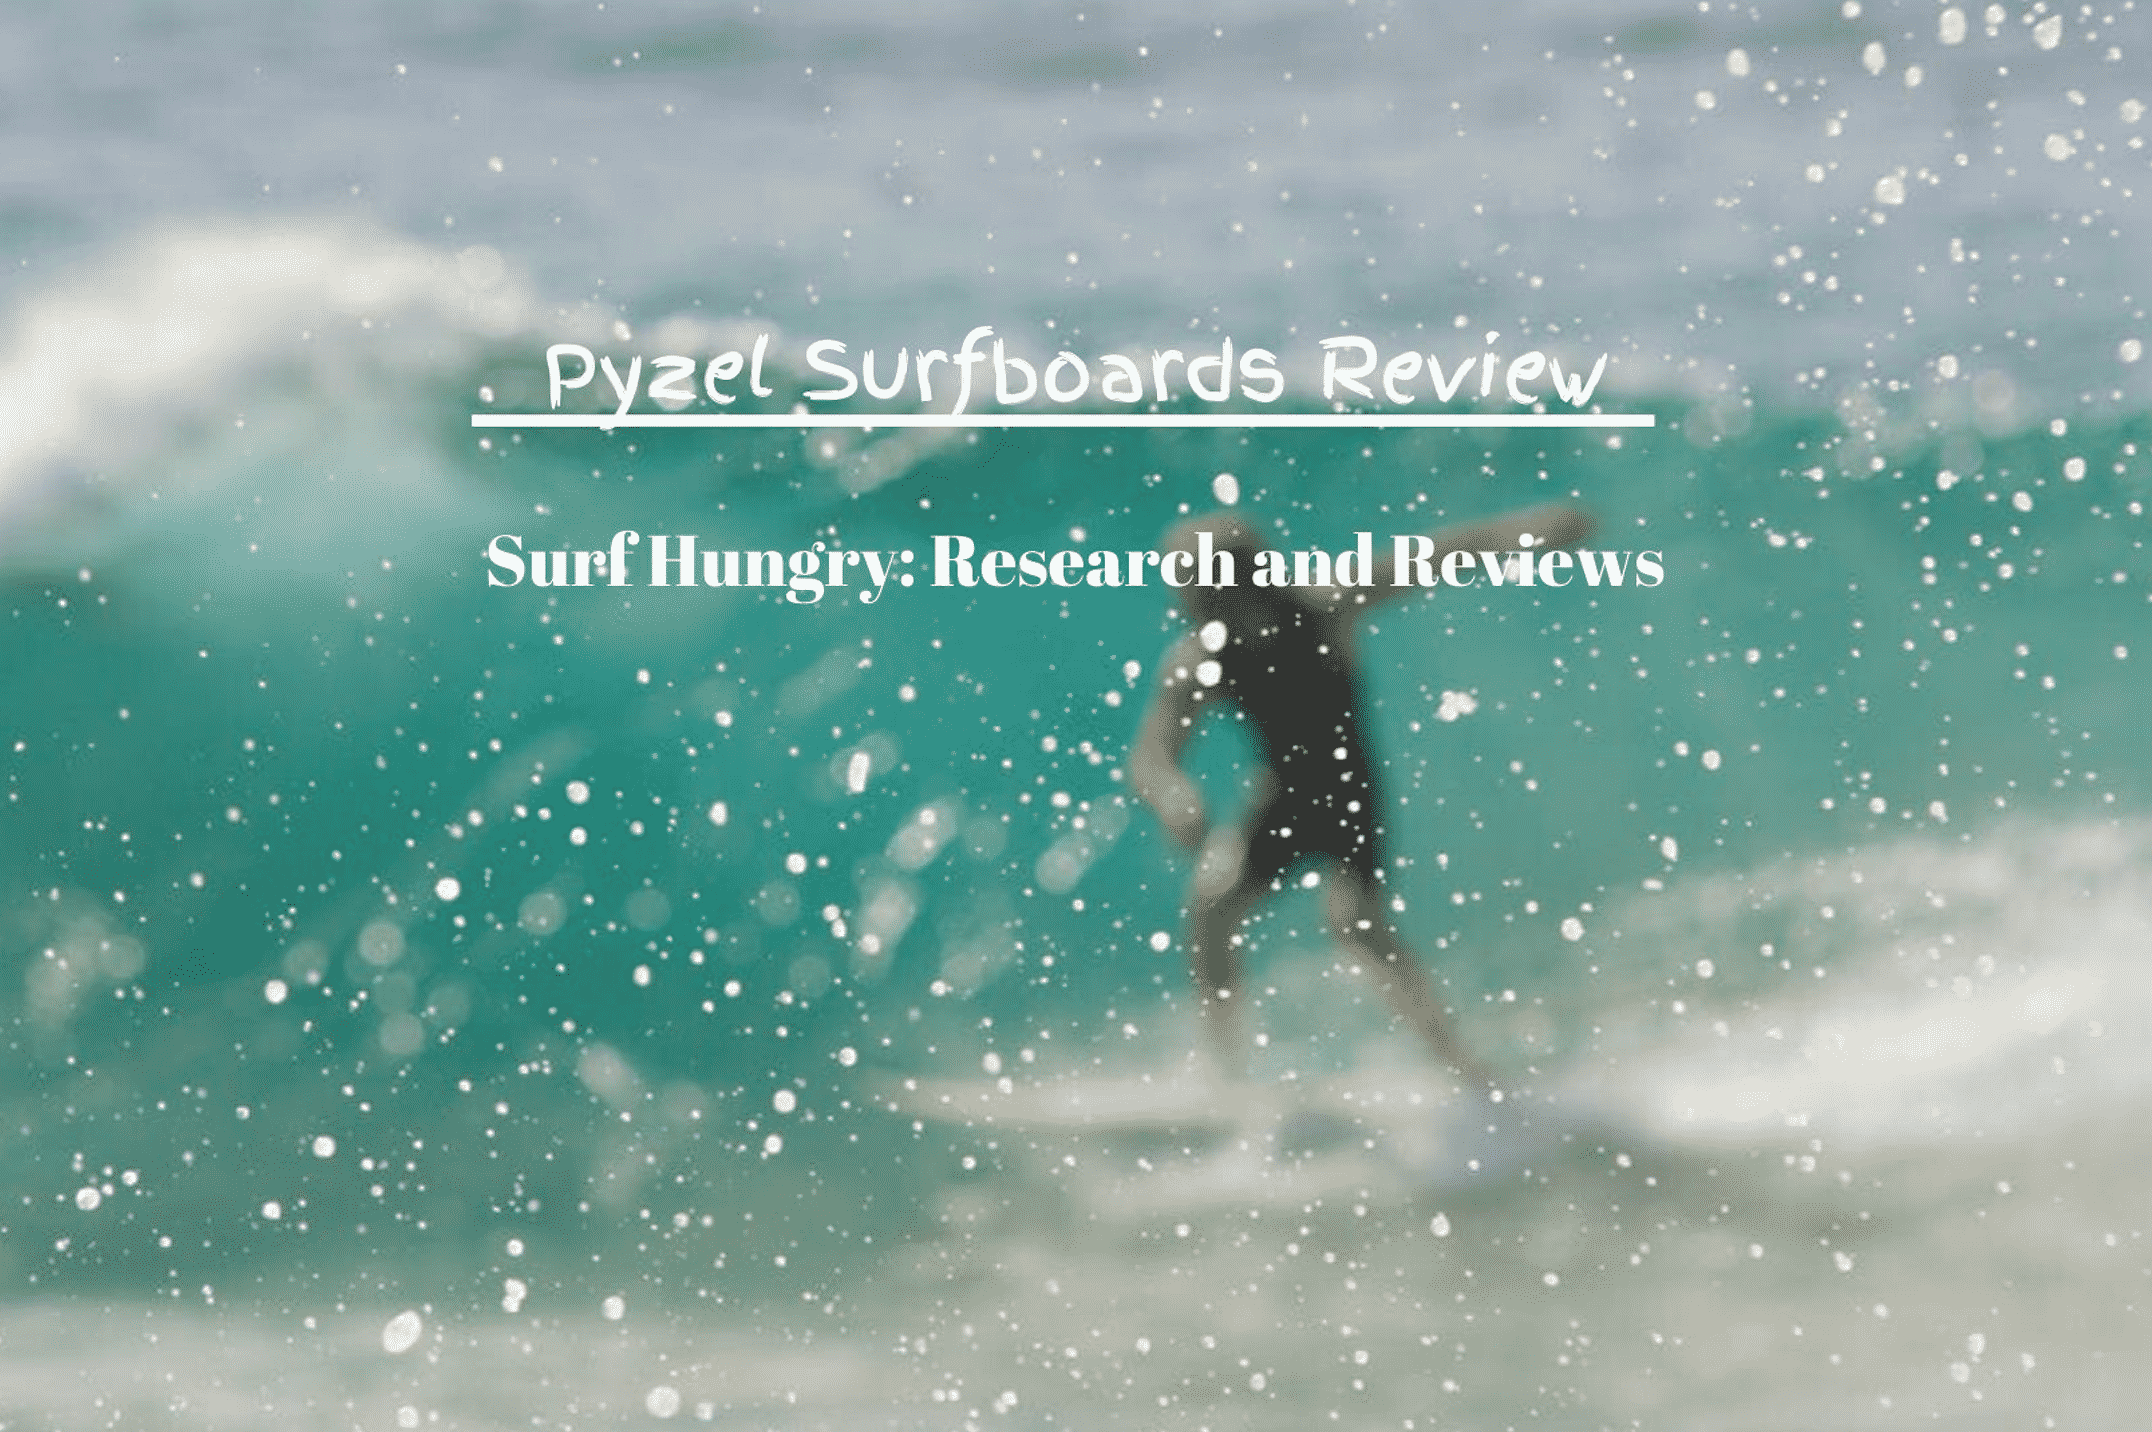 pyzel surfboards review